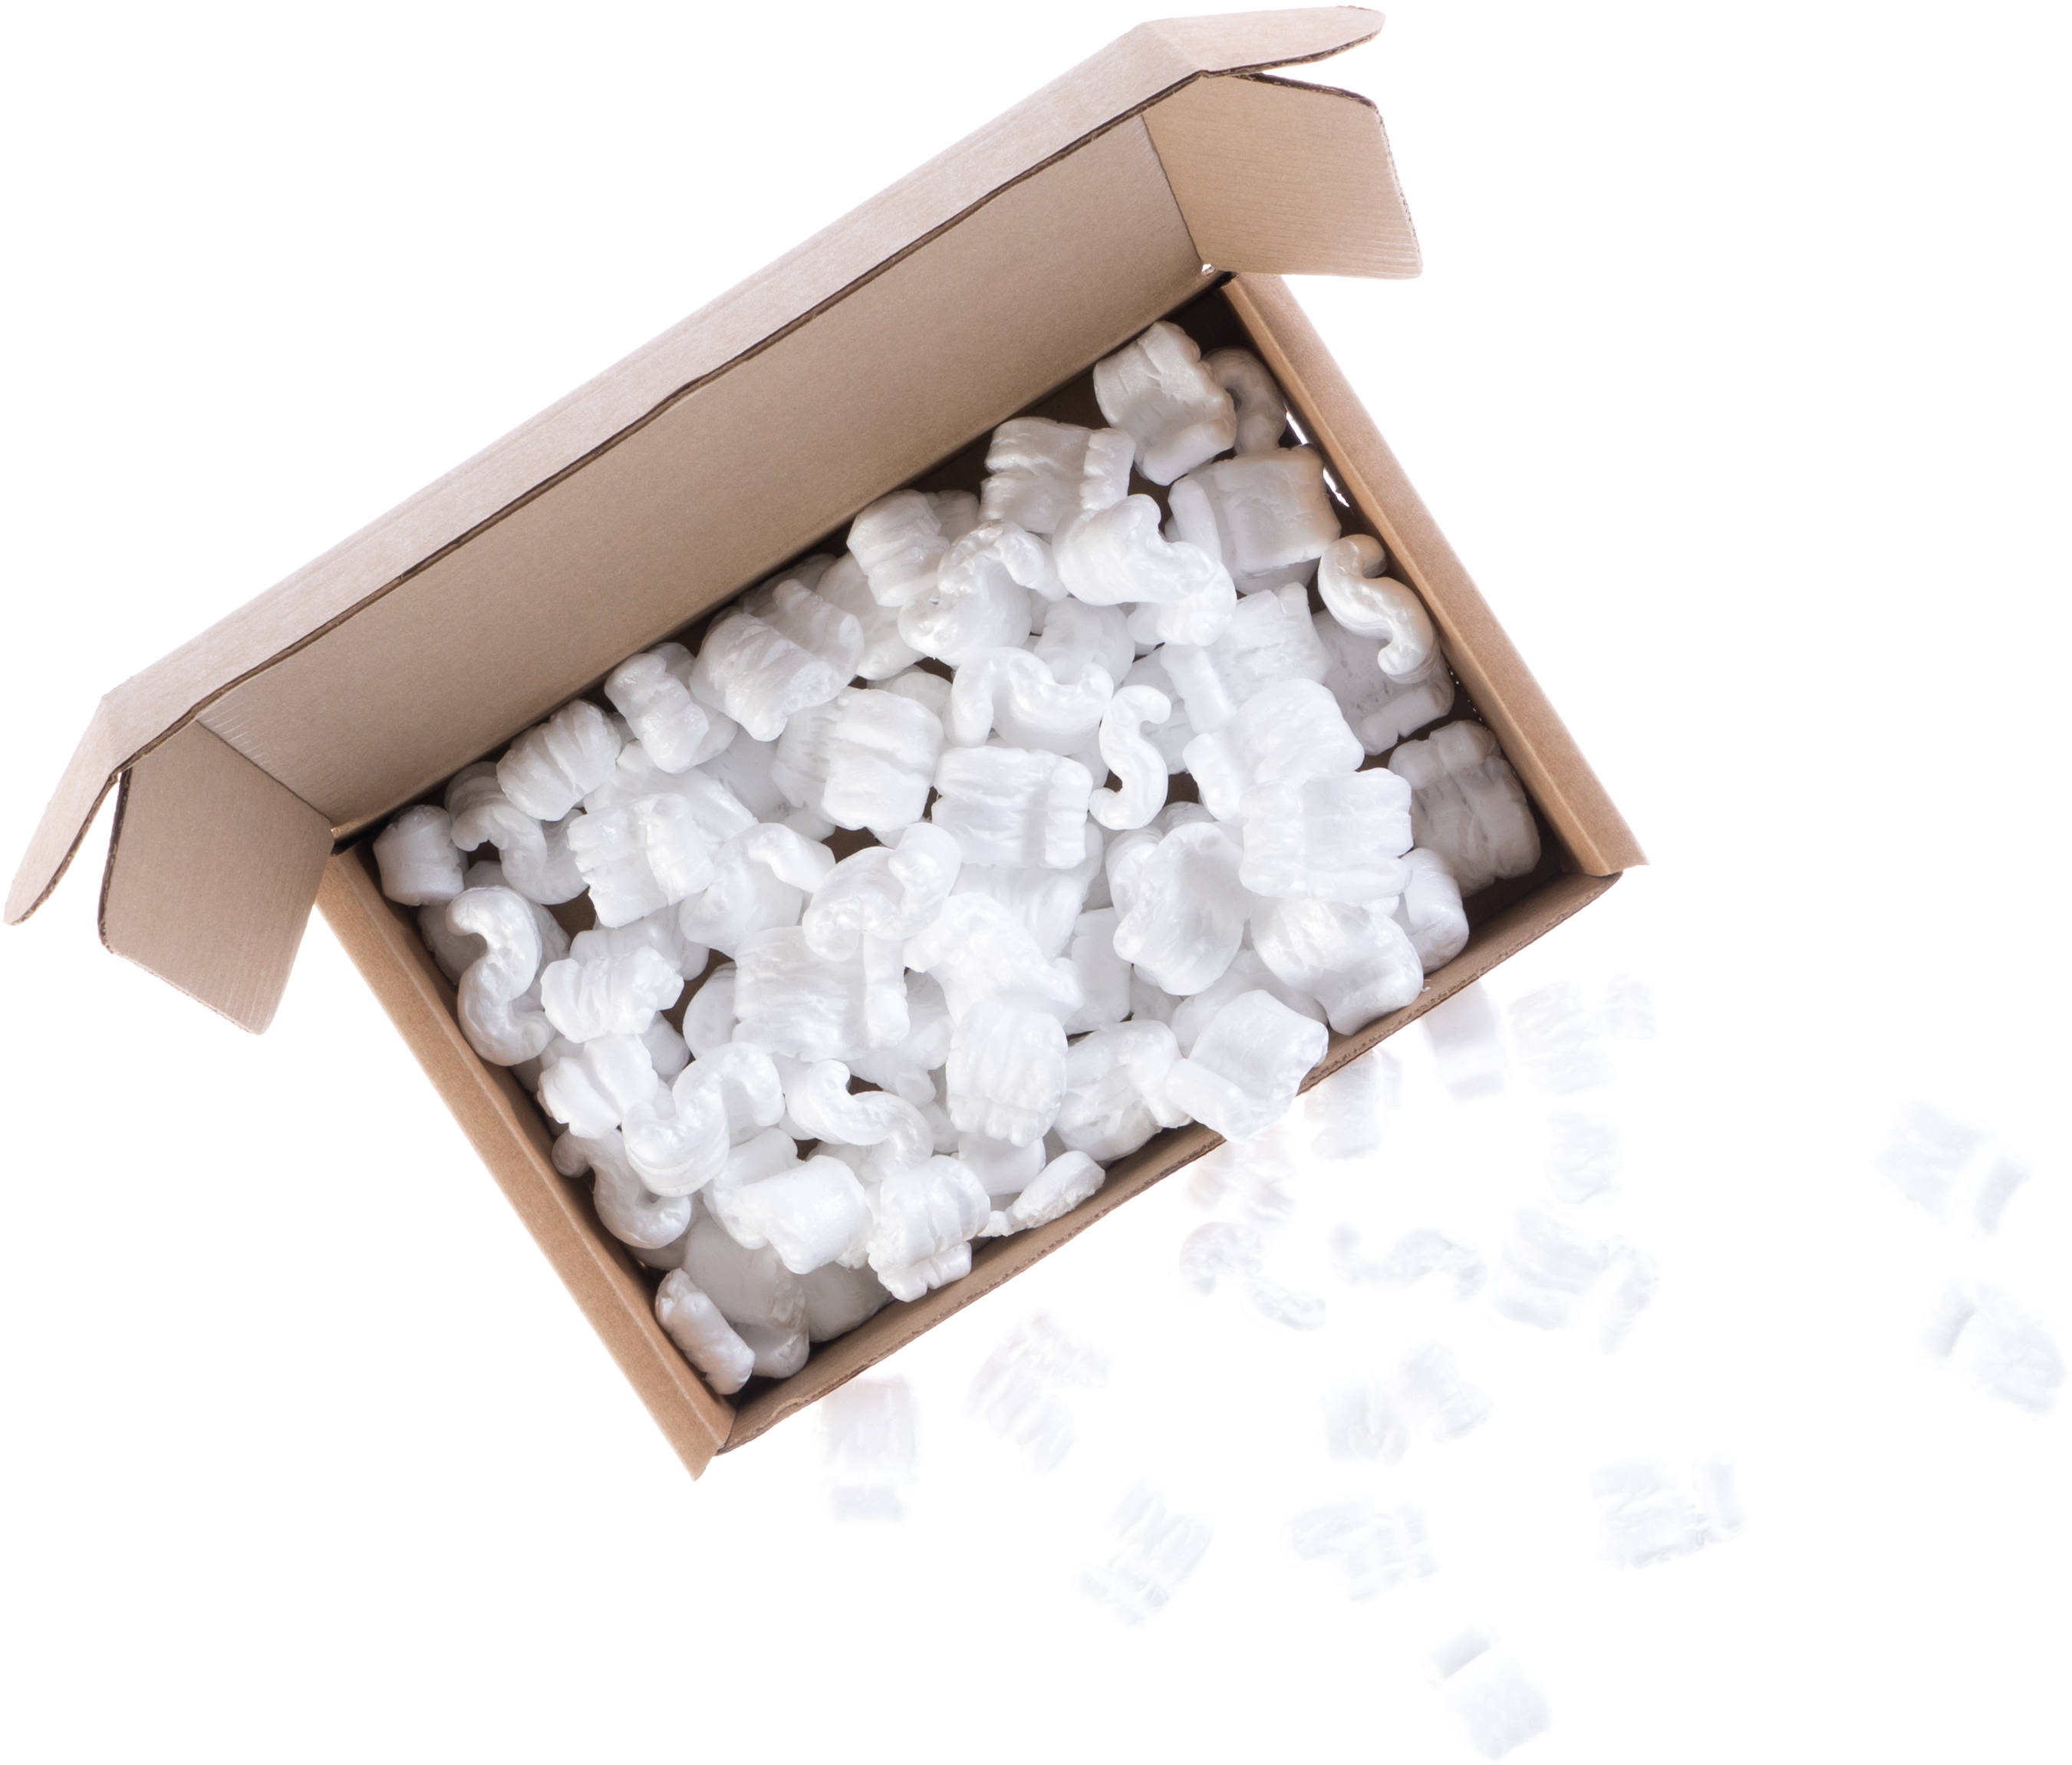 Empty cardboard shipping box with packing peanuts